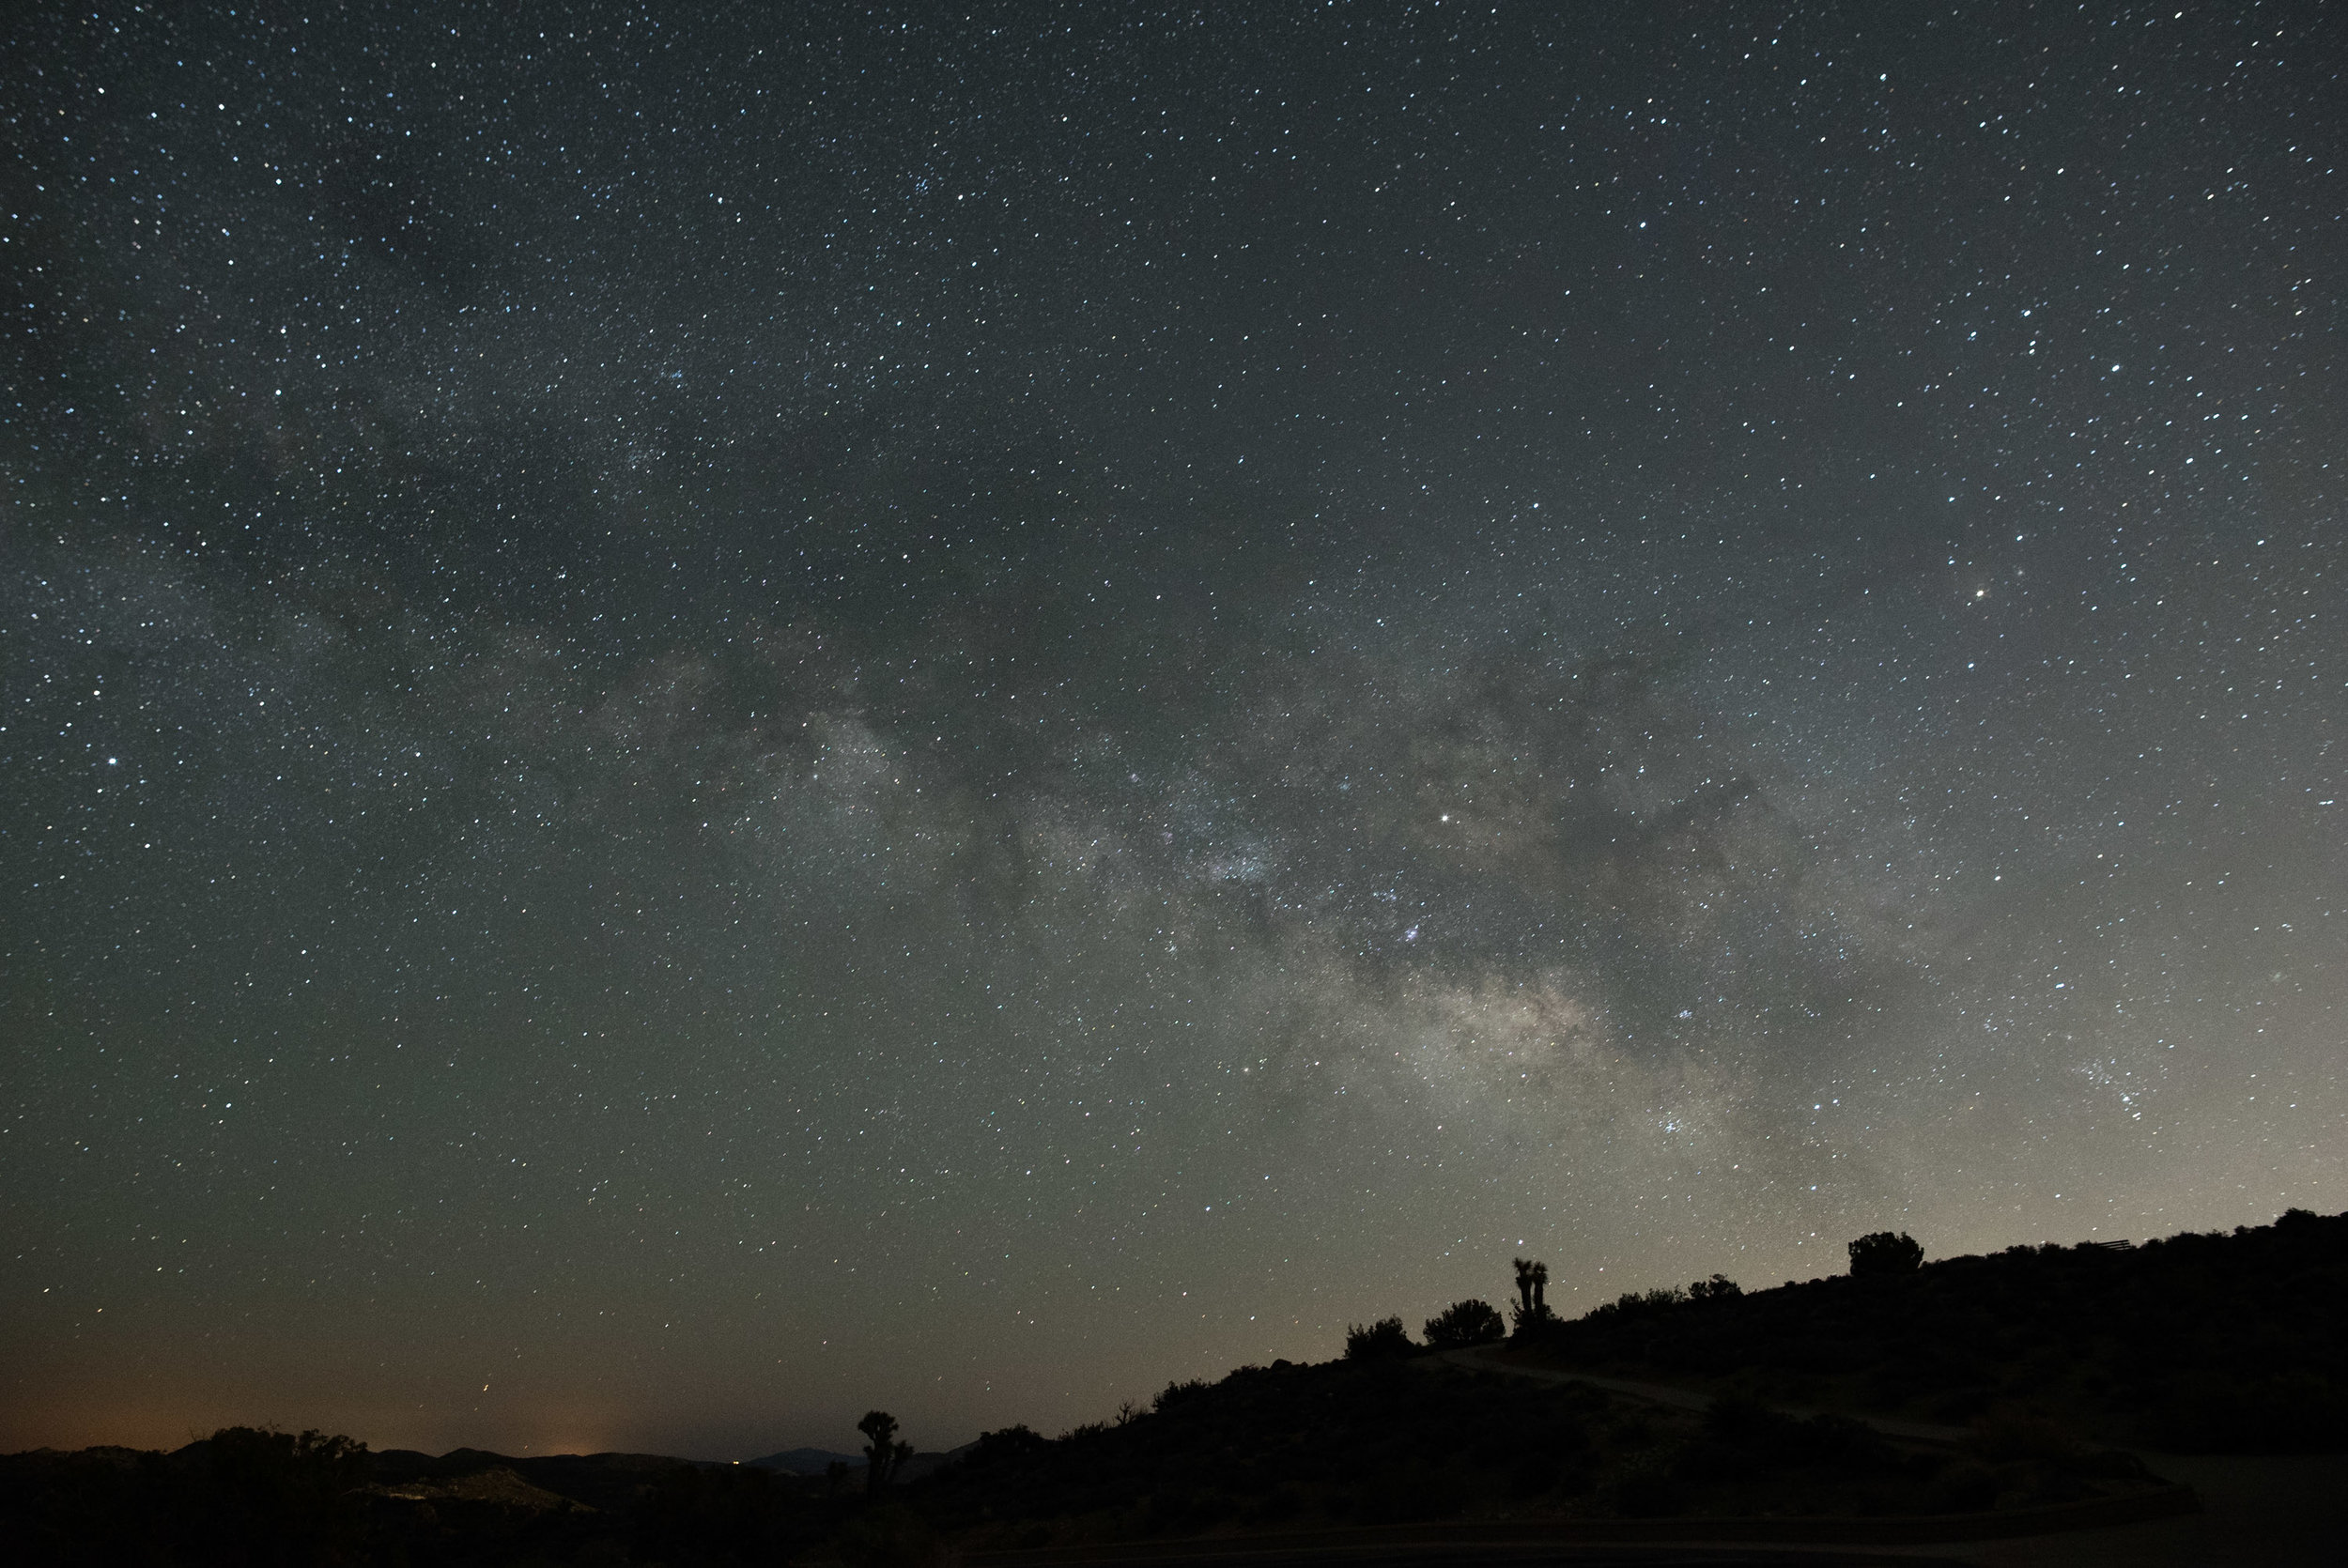 Subtle Core of the Milky Way